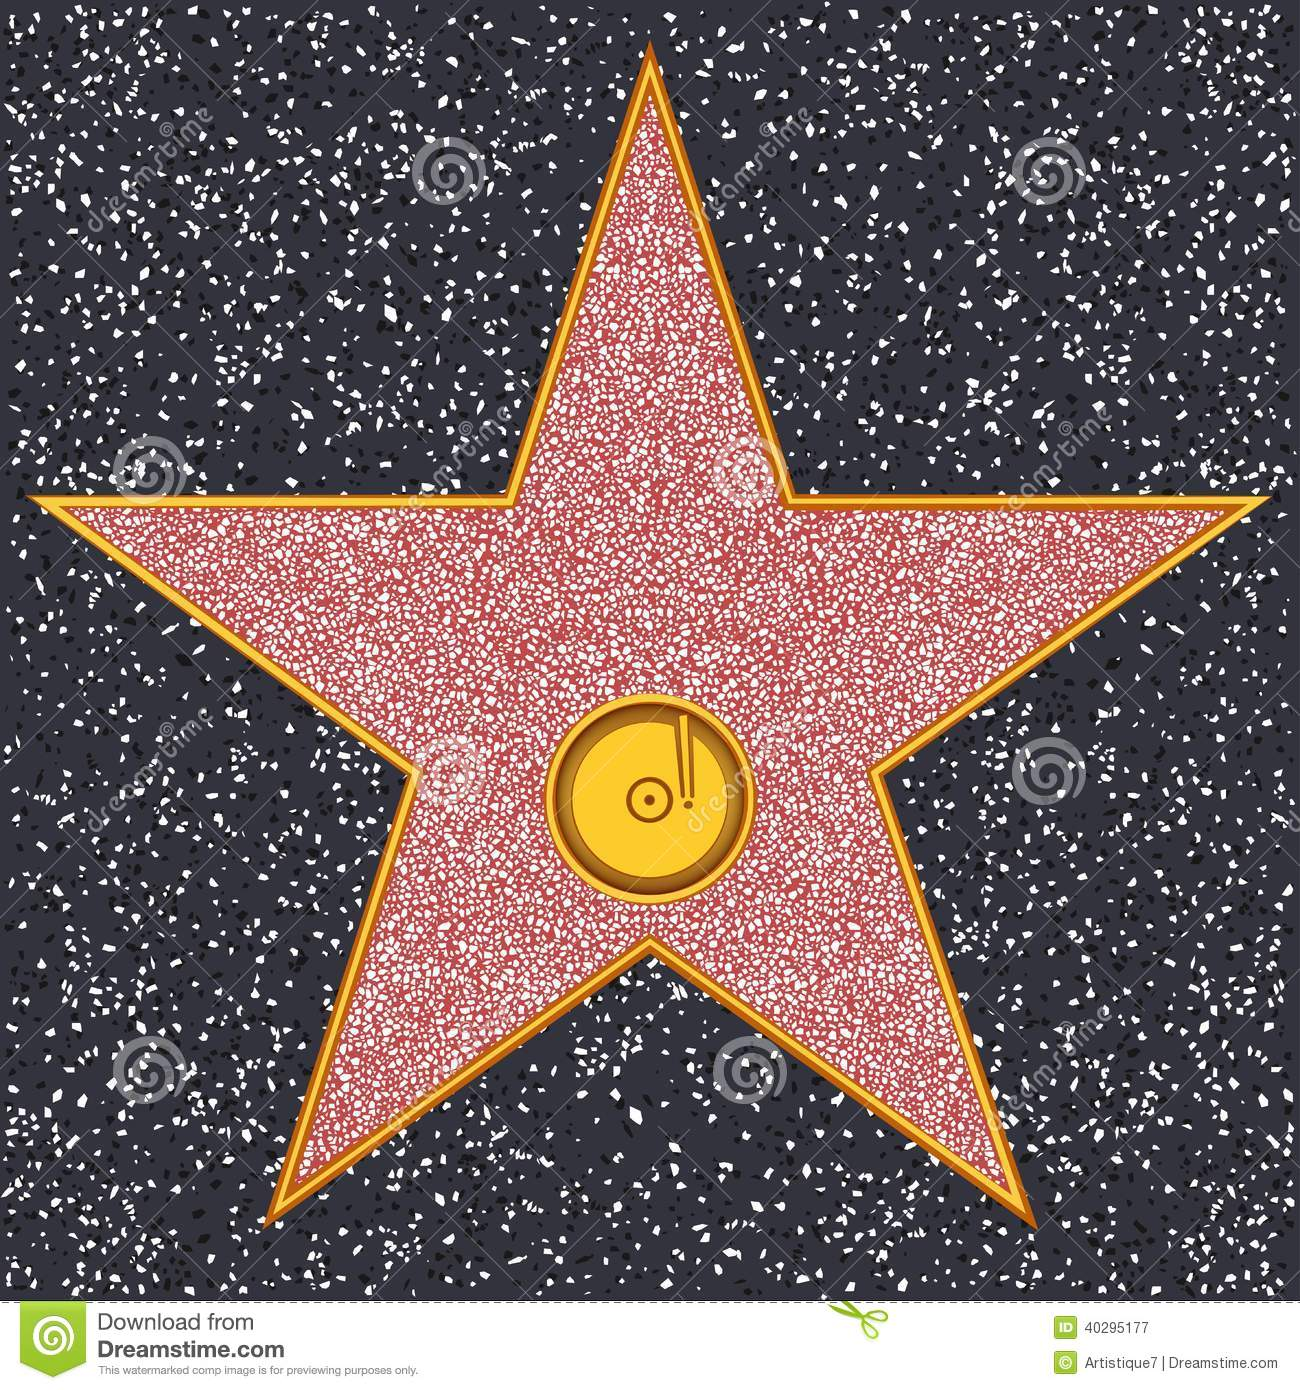 Hollywood Walk Of Fame Star Clipart.